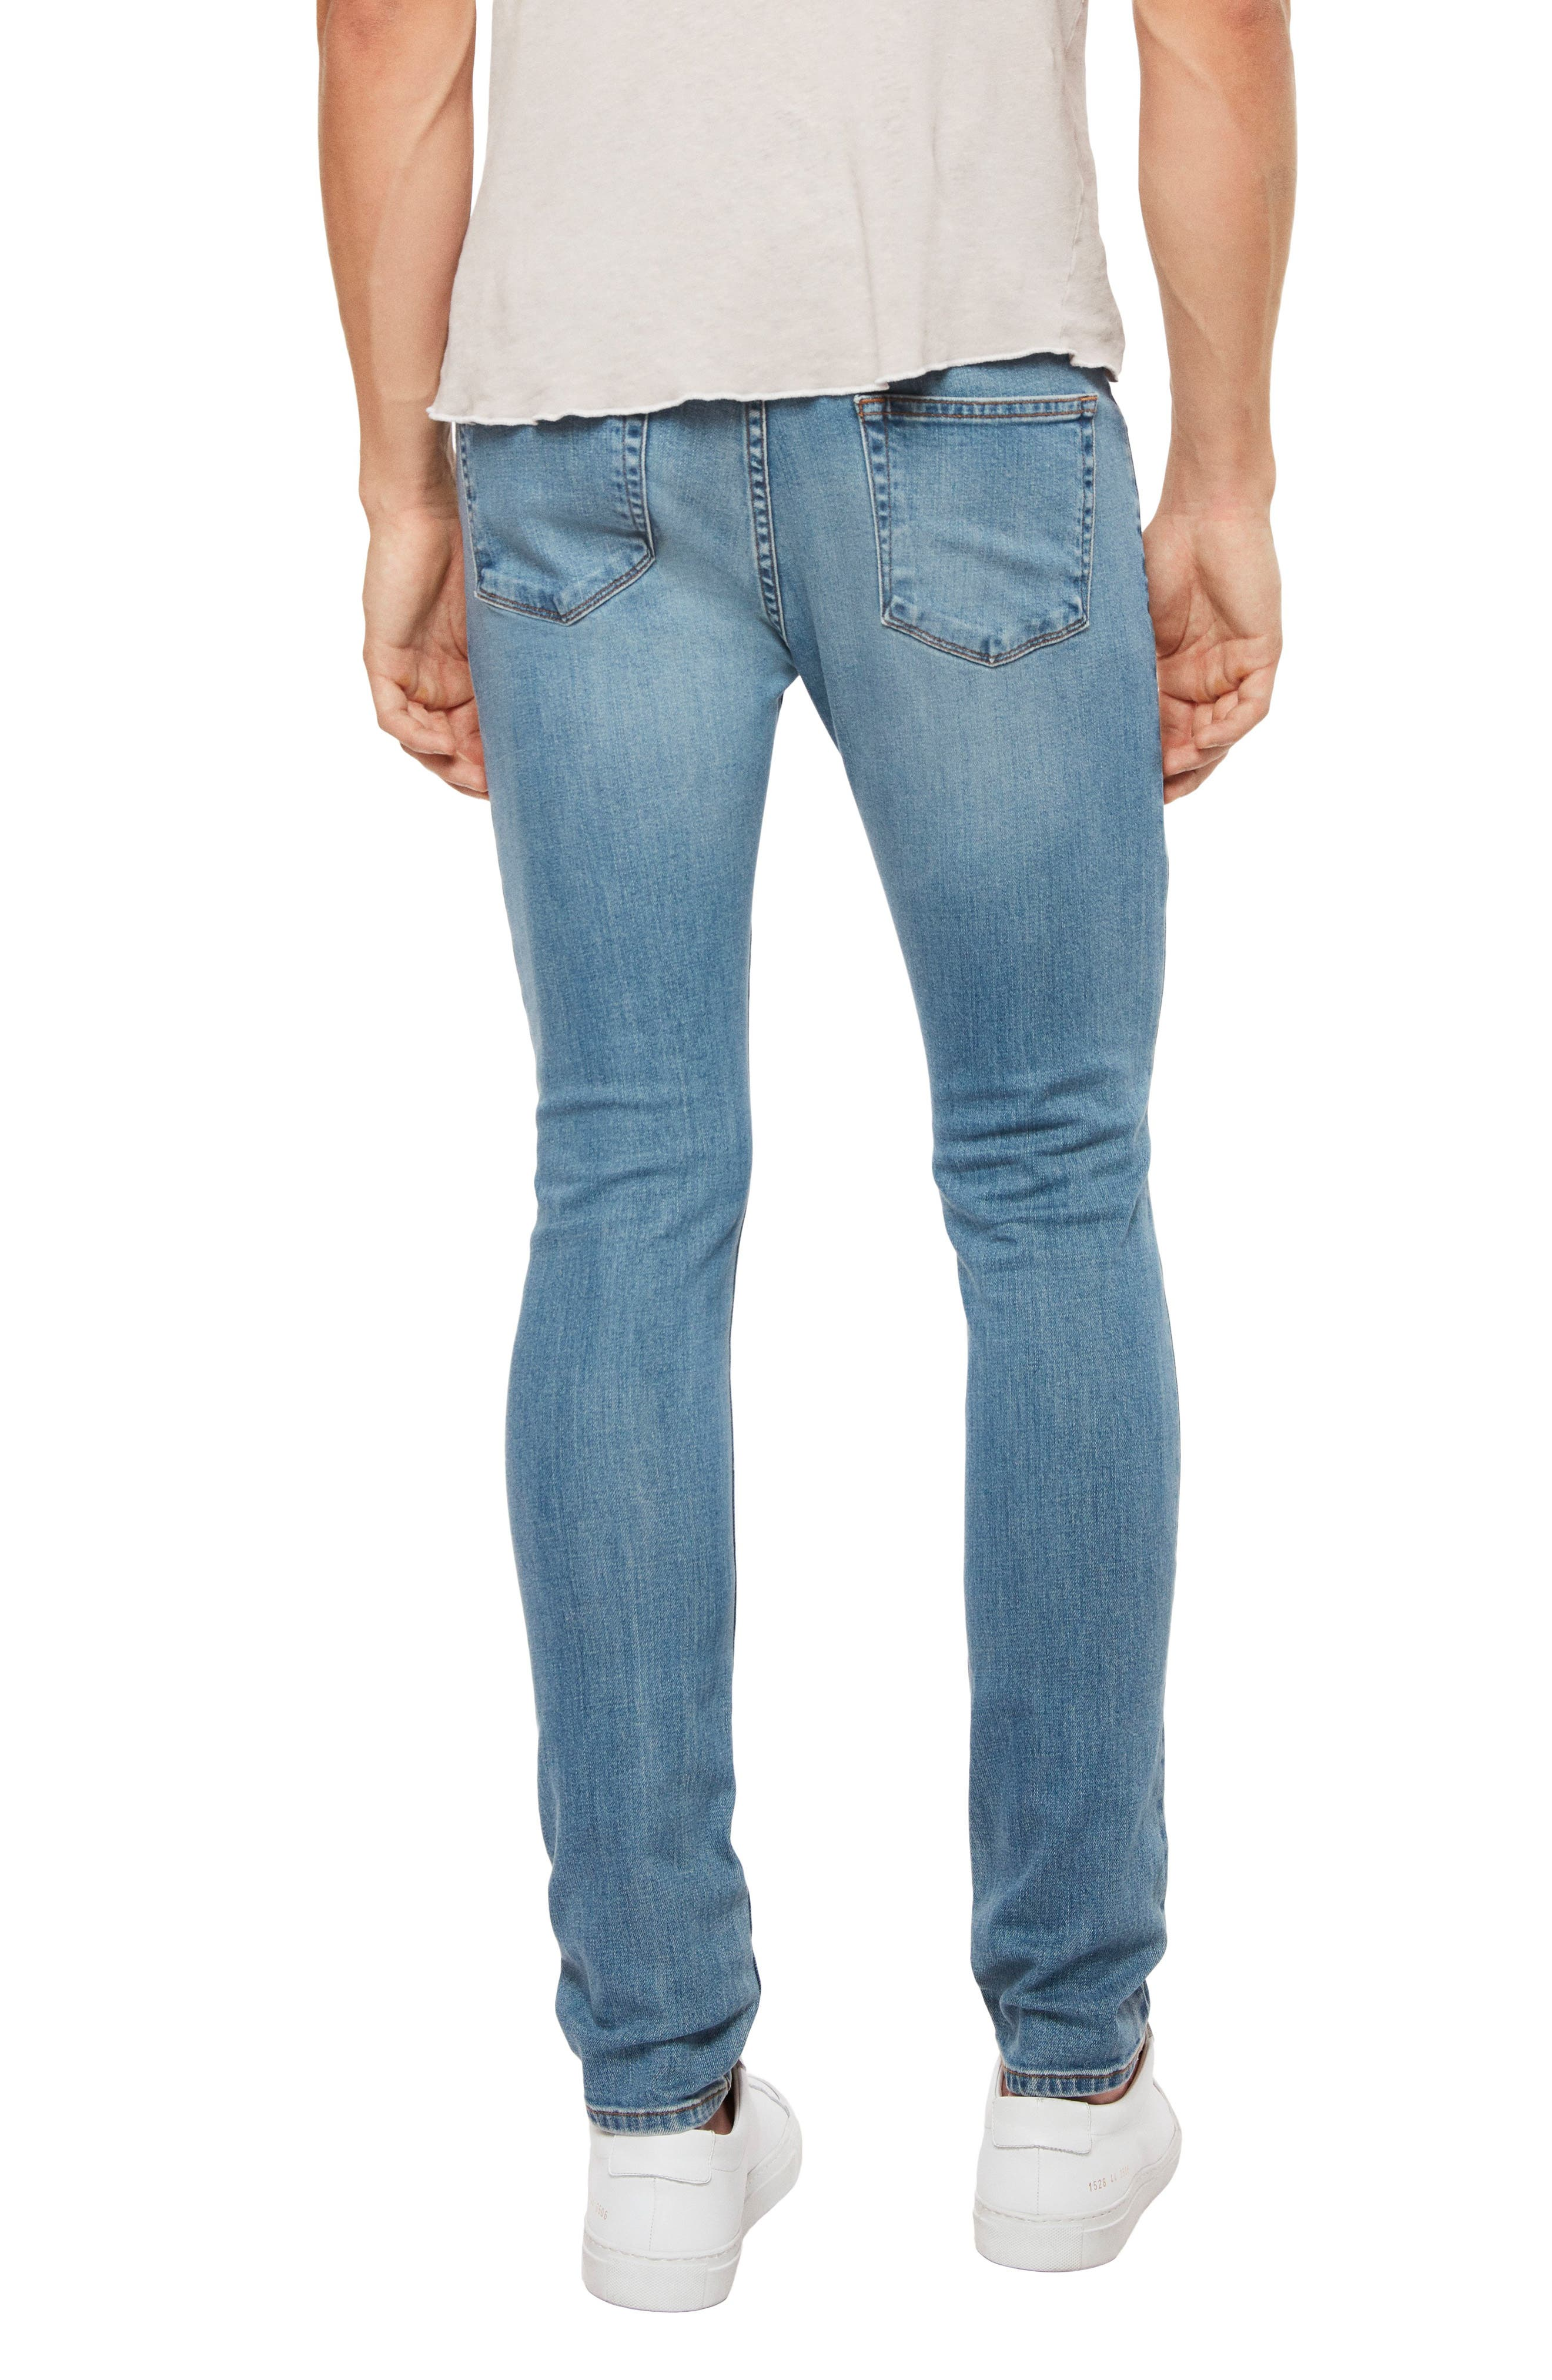 Skinny Fit Jeans,                             Alternate thumbnail 2, color,                             Stagon